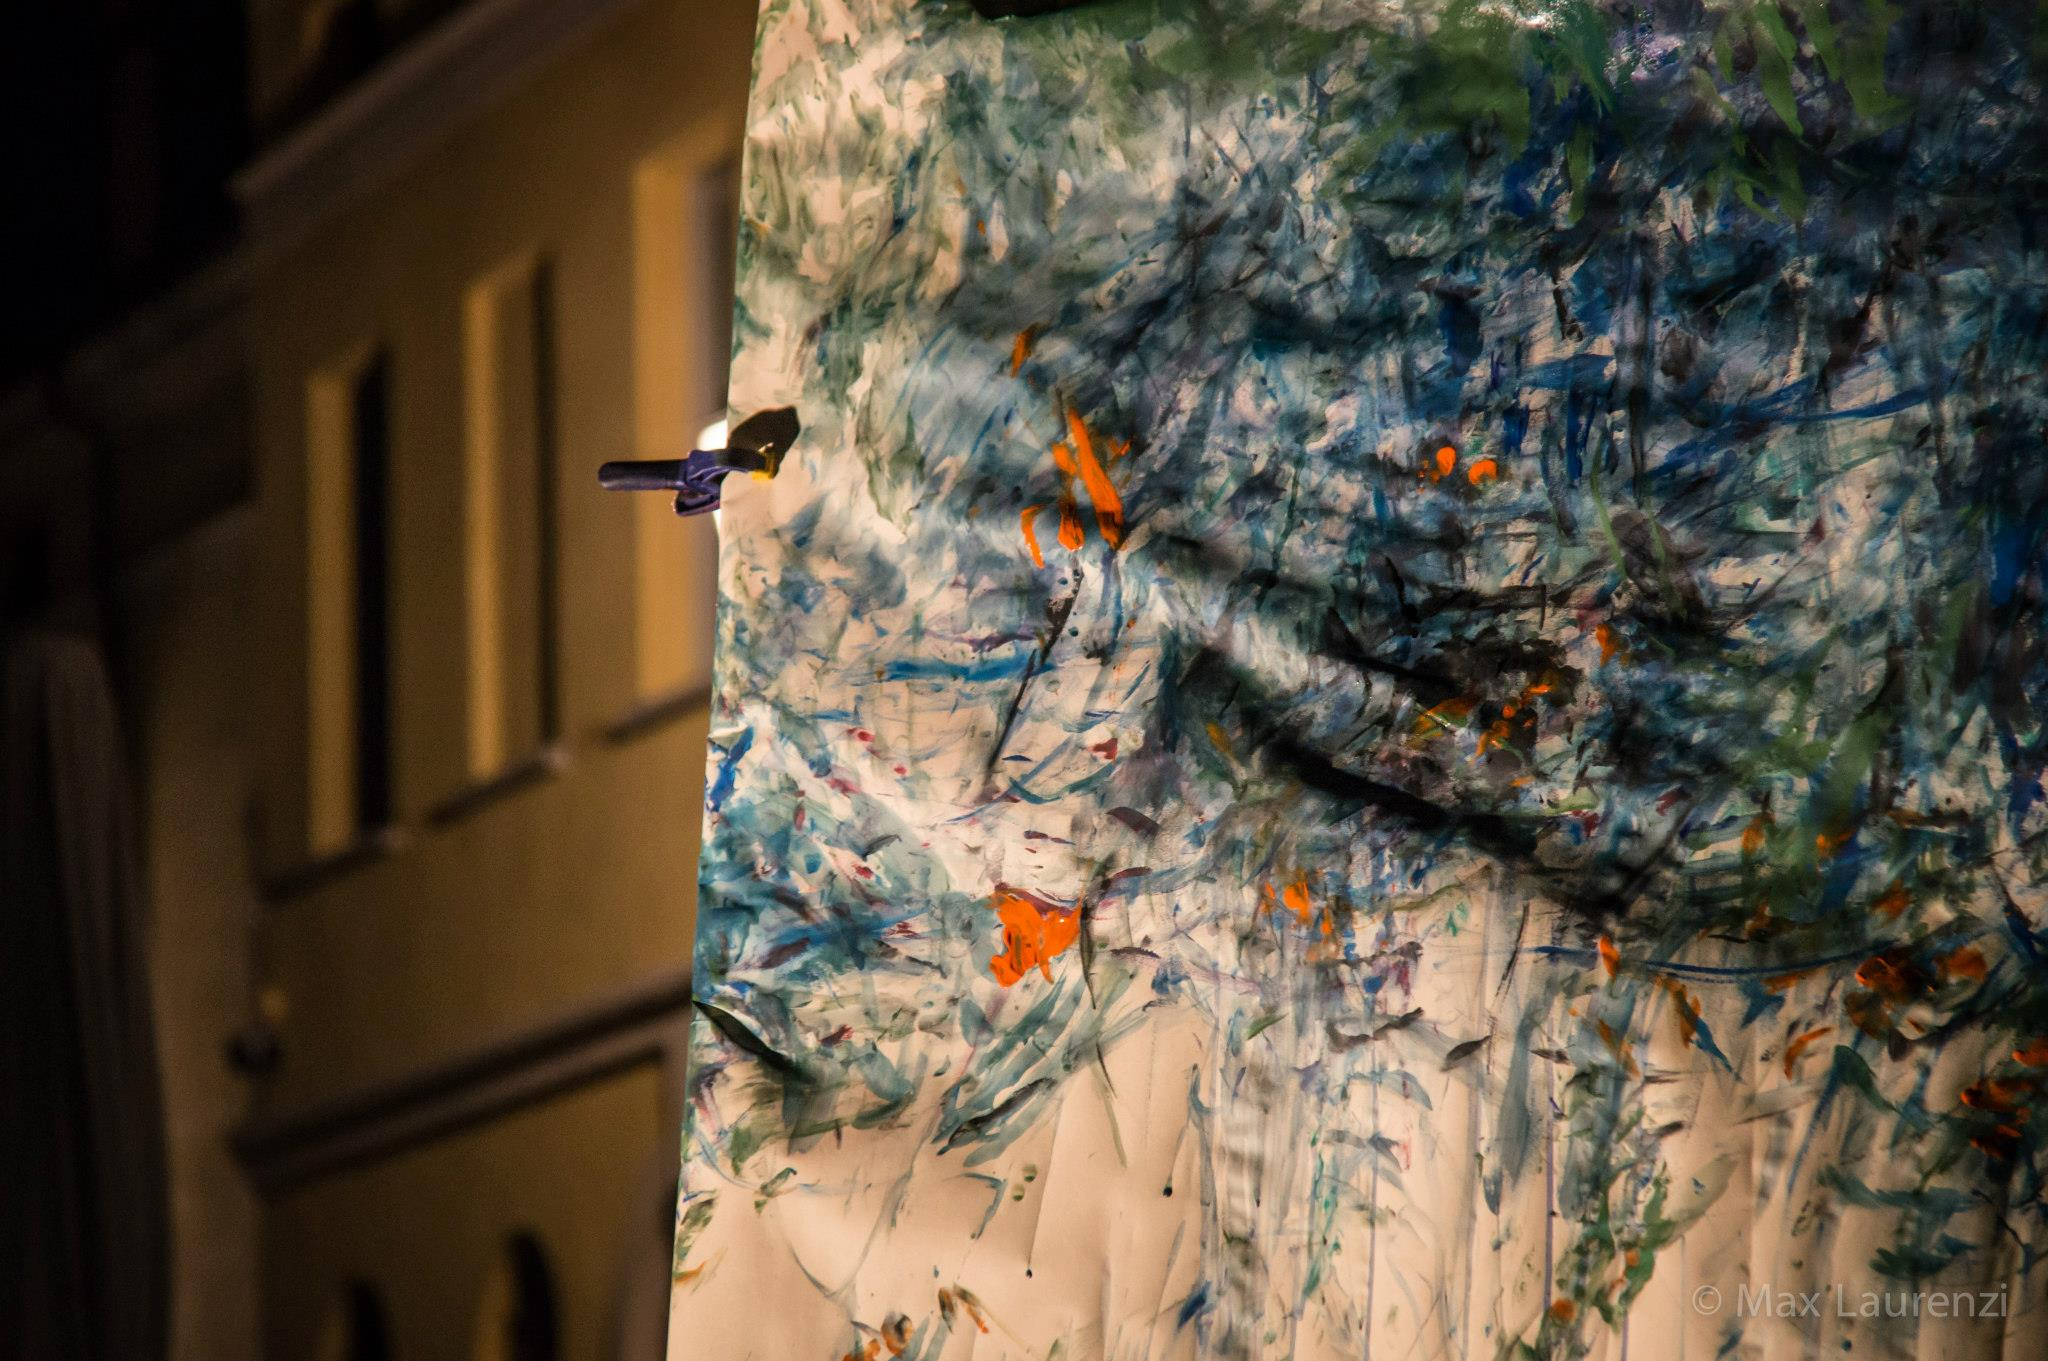 Detail photo from a performance by Federica Aiello Pini courtesy of Max Laurenzi